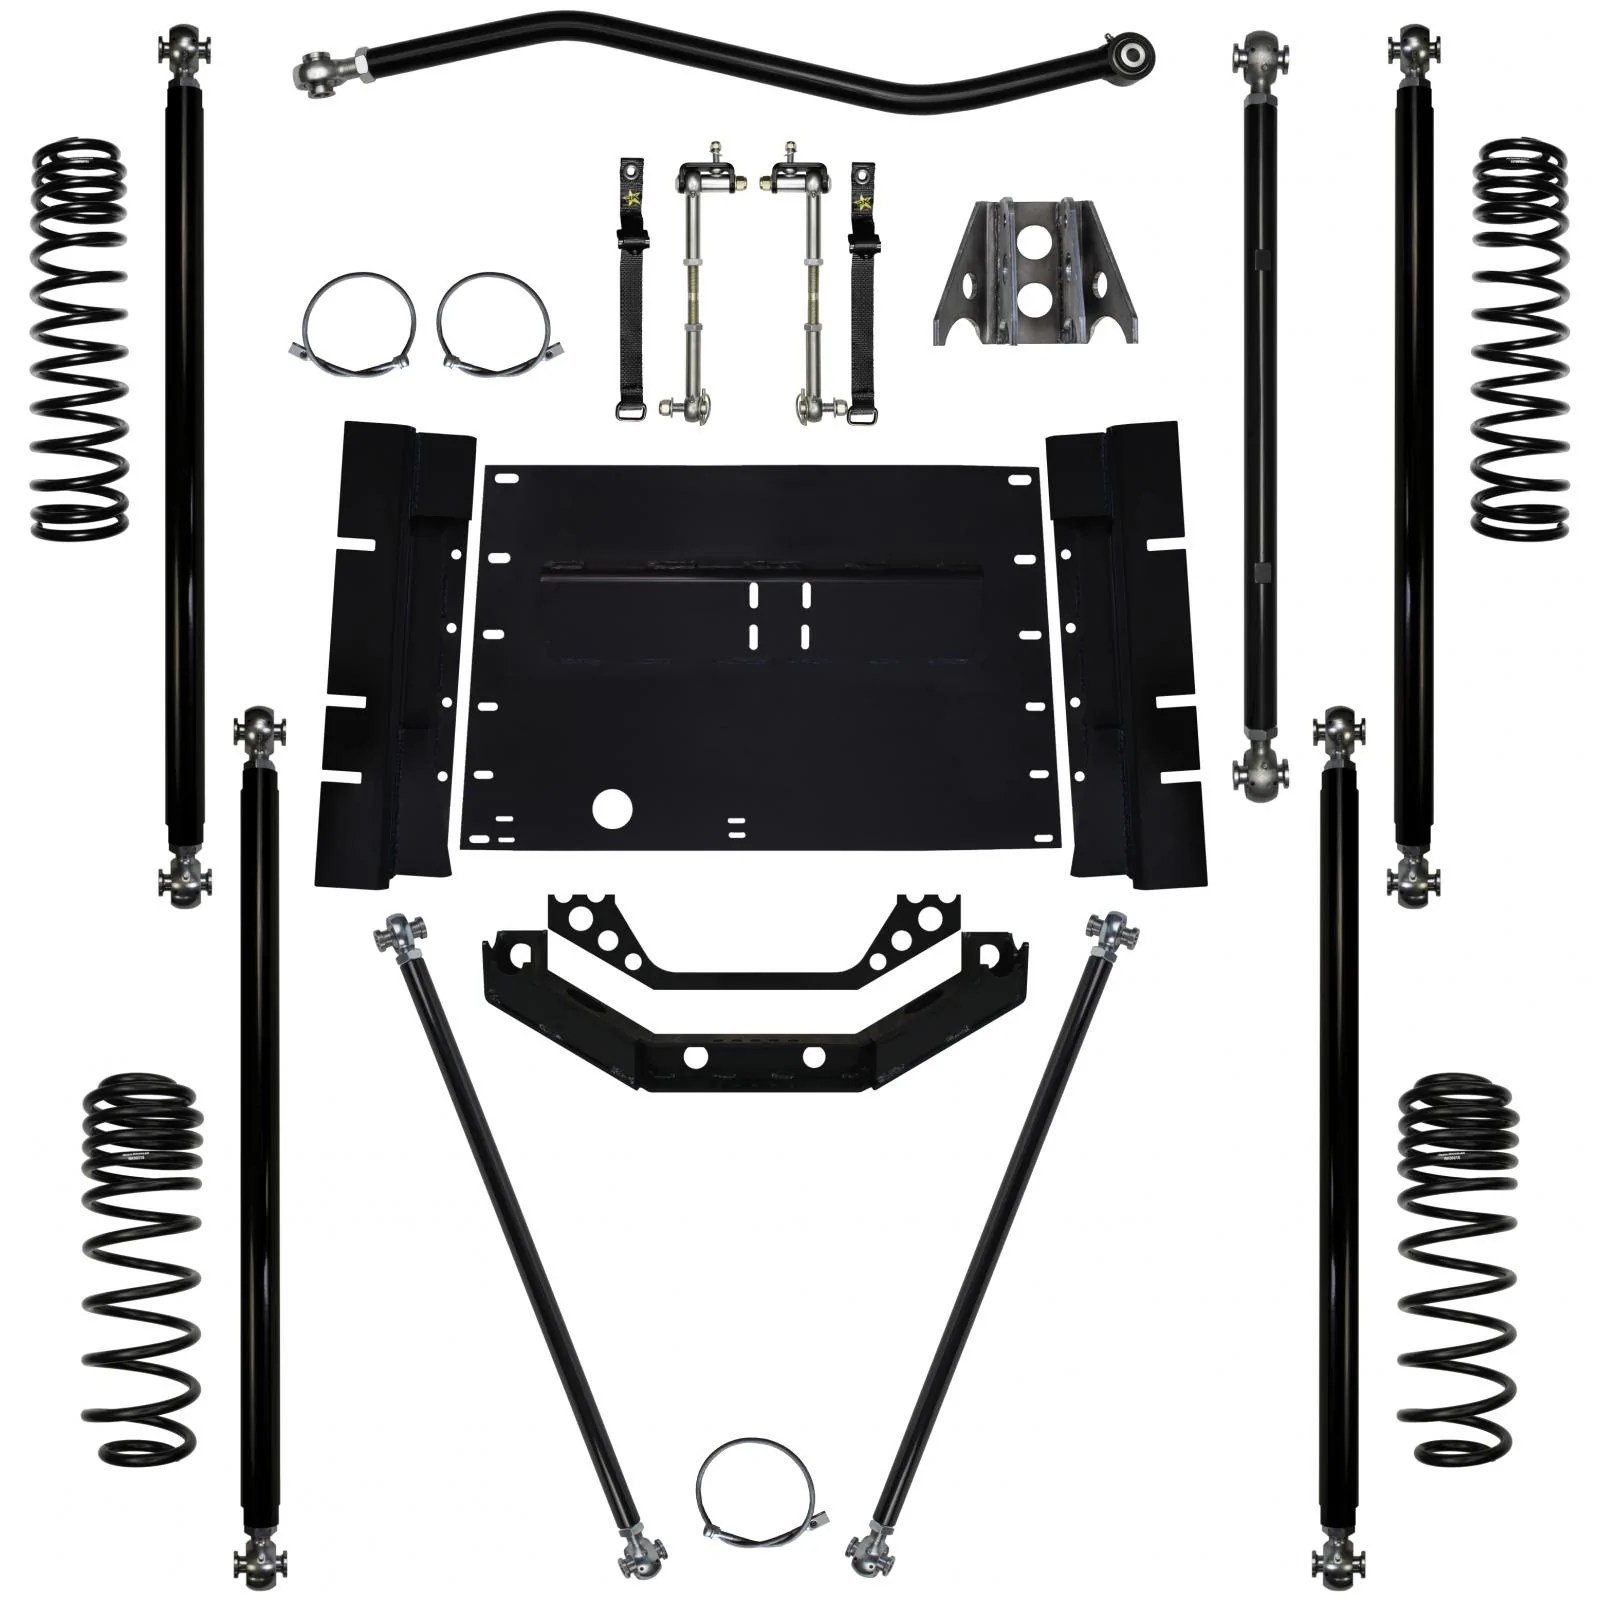 hight resolution of rock krawler 2 0 inch off road pro long arm system for jeep wrangler 2003 2006 tj